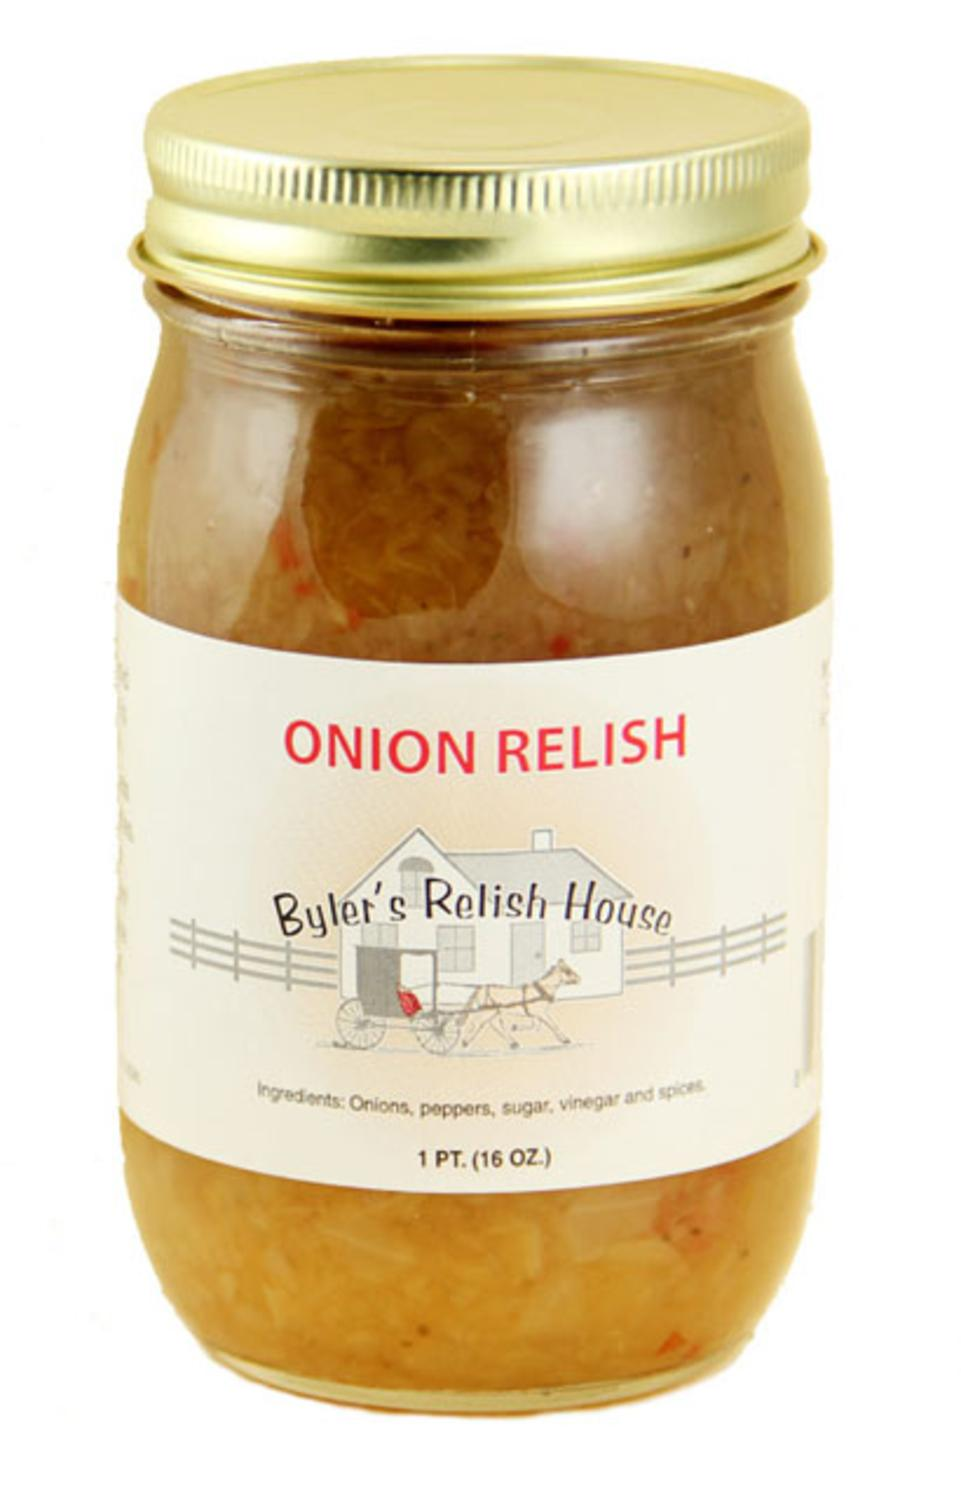 Byler's Relish House Homemade Amish Country Onion Relish 16 oz. by Byler's Relish House